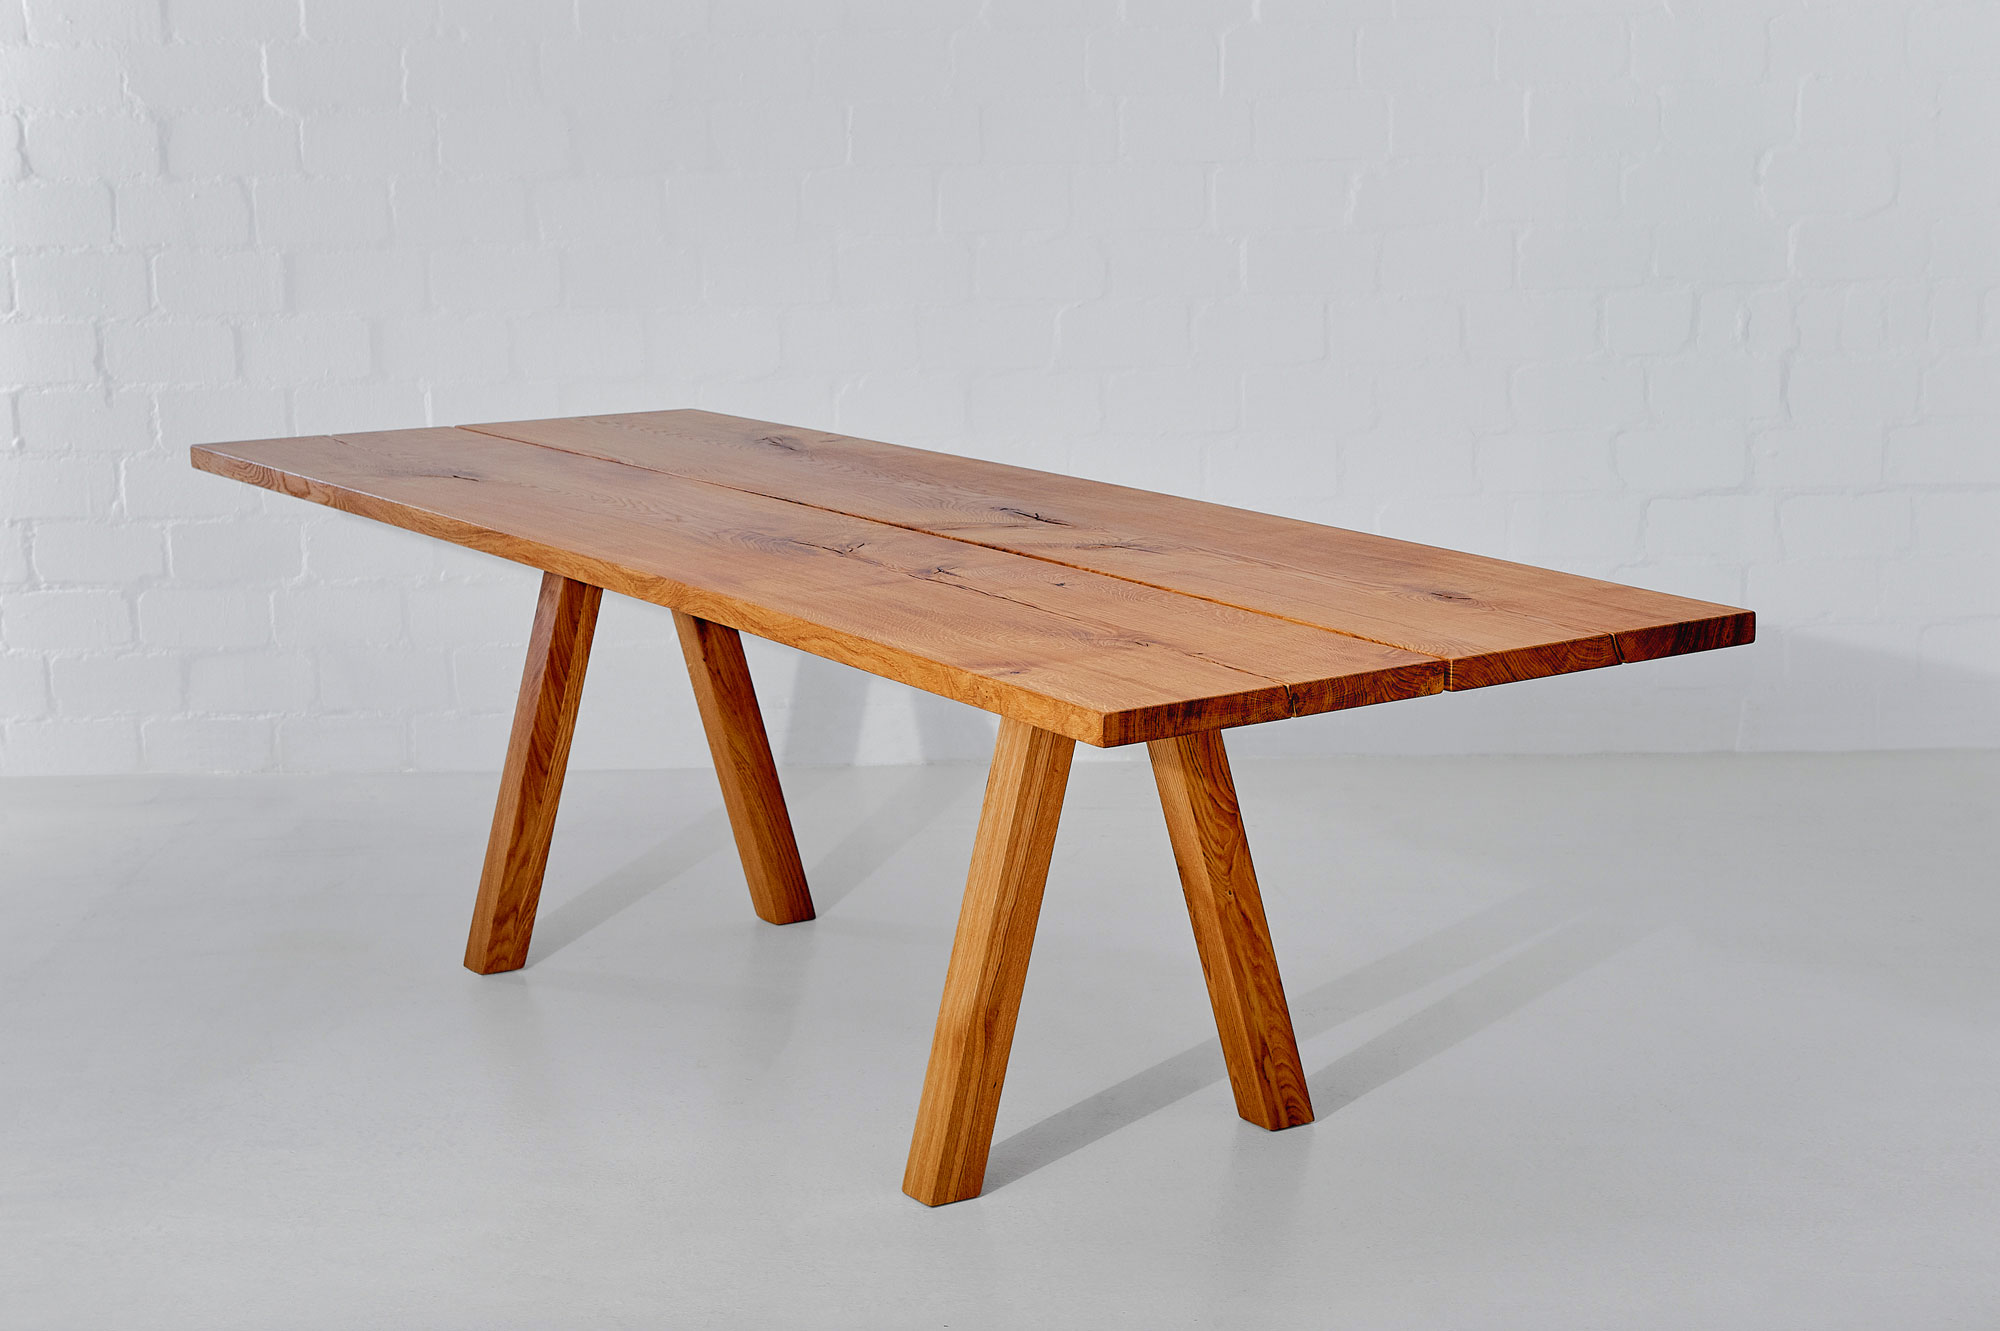 Designer Tree Trunk Table PAPILIO Edited custom made in solid wood by vitamin design